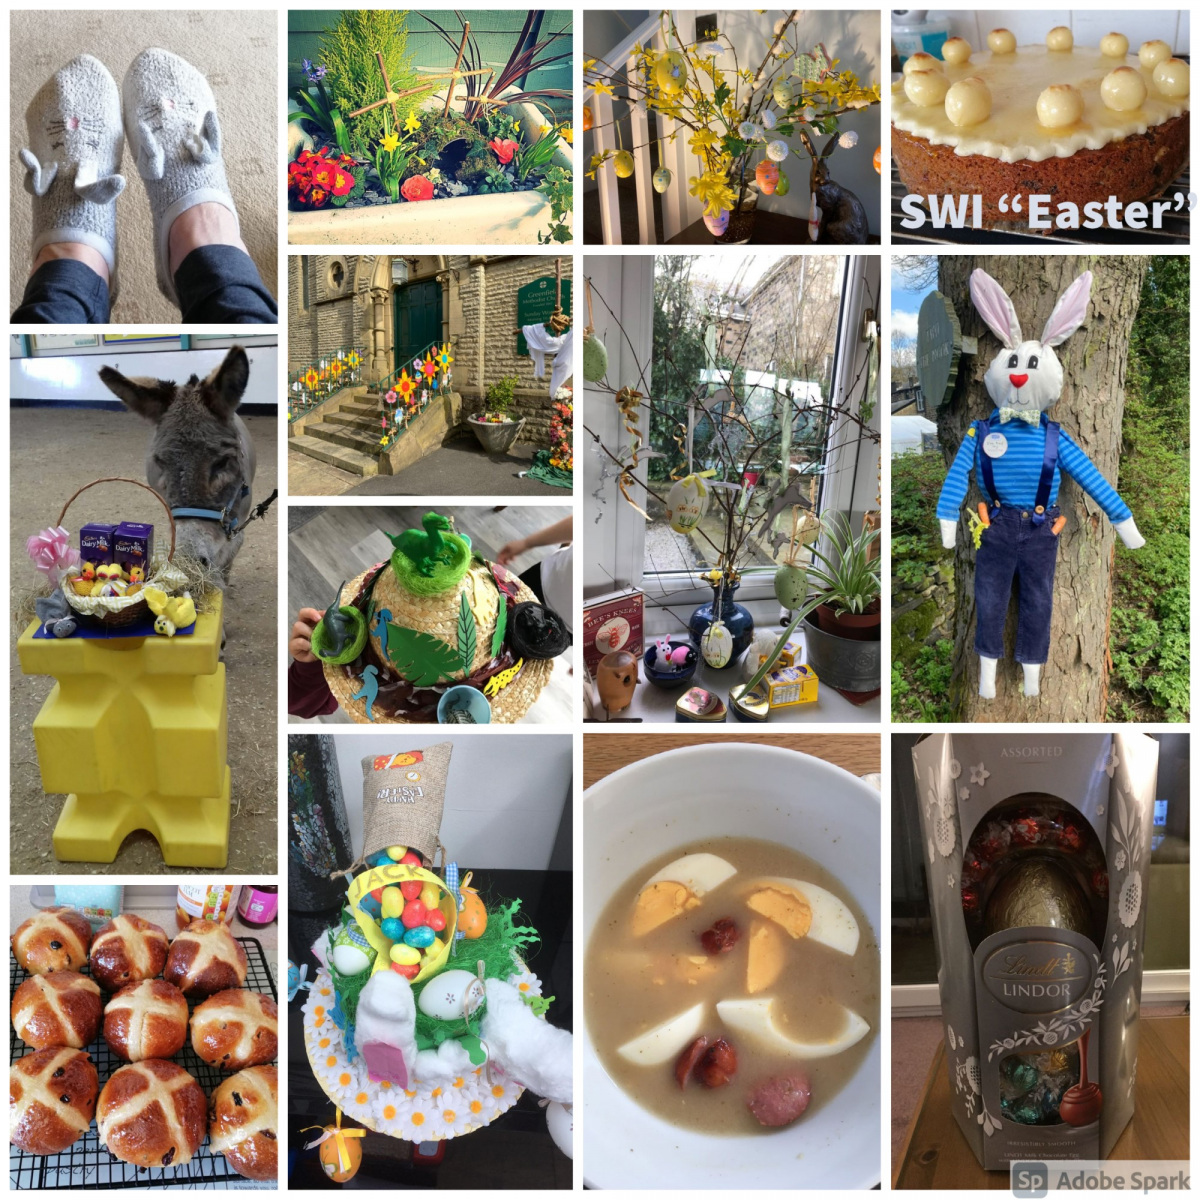 SWI-Easter-part1